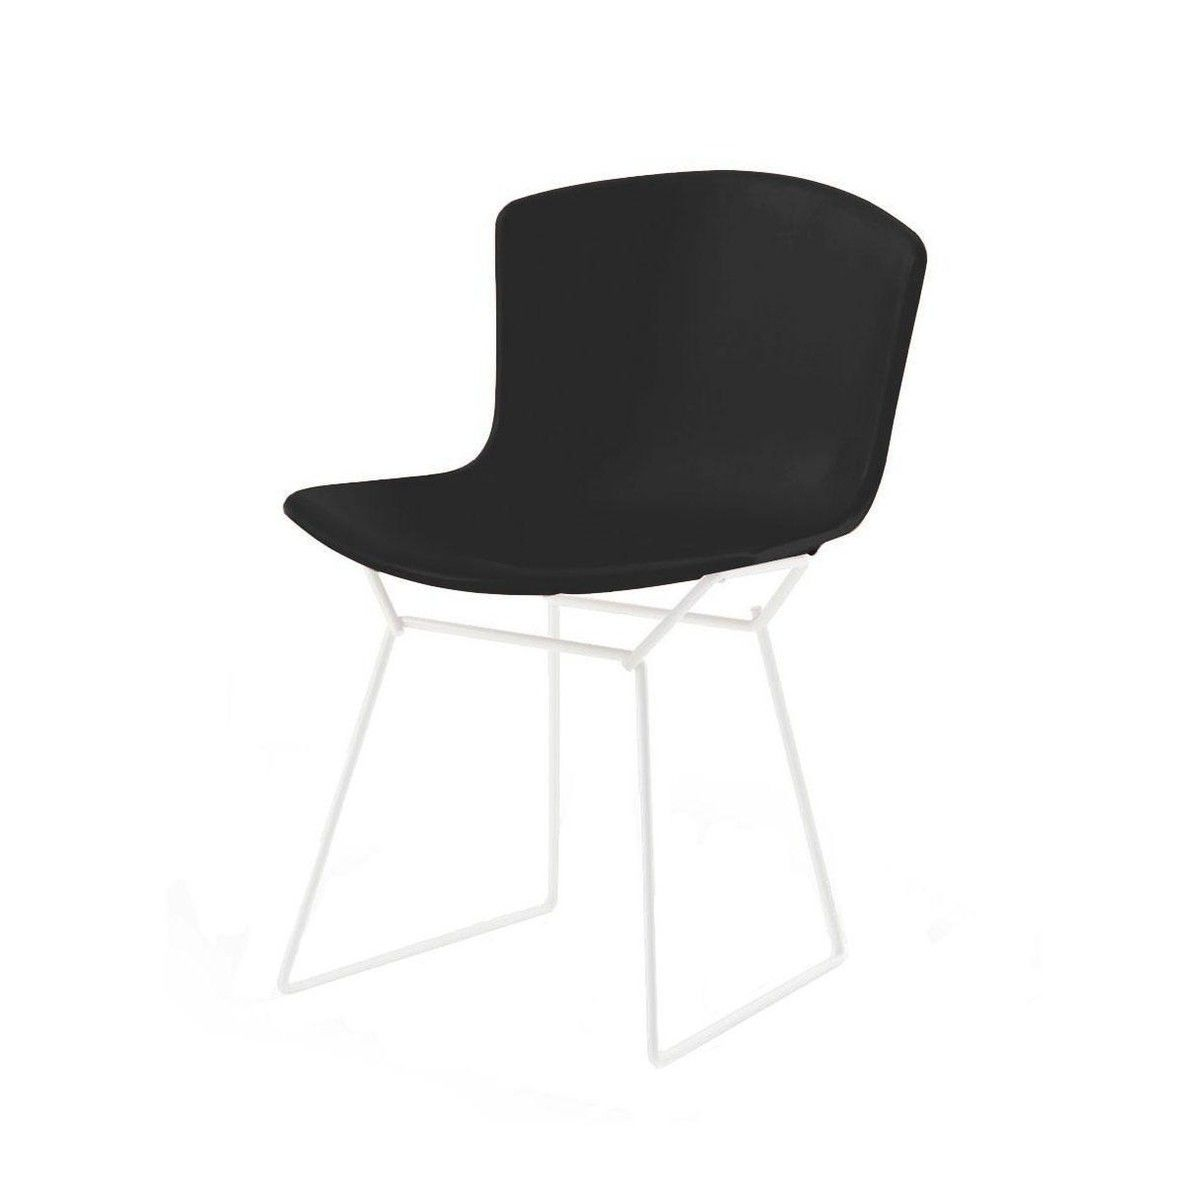 bertoia plastic side chair chaise blanc knoll international. Black Bedroom Furniture Sets. Home Design Ideas